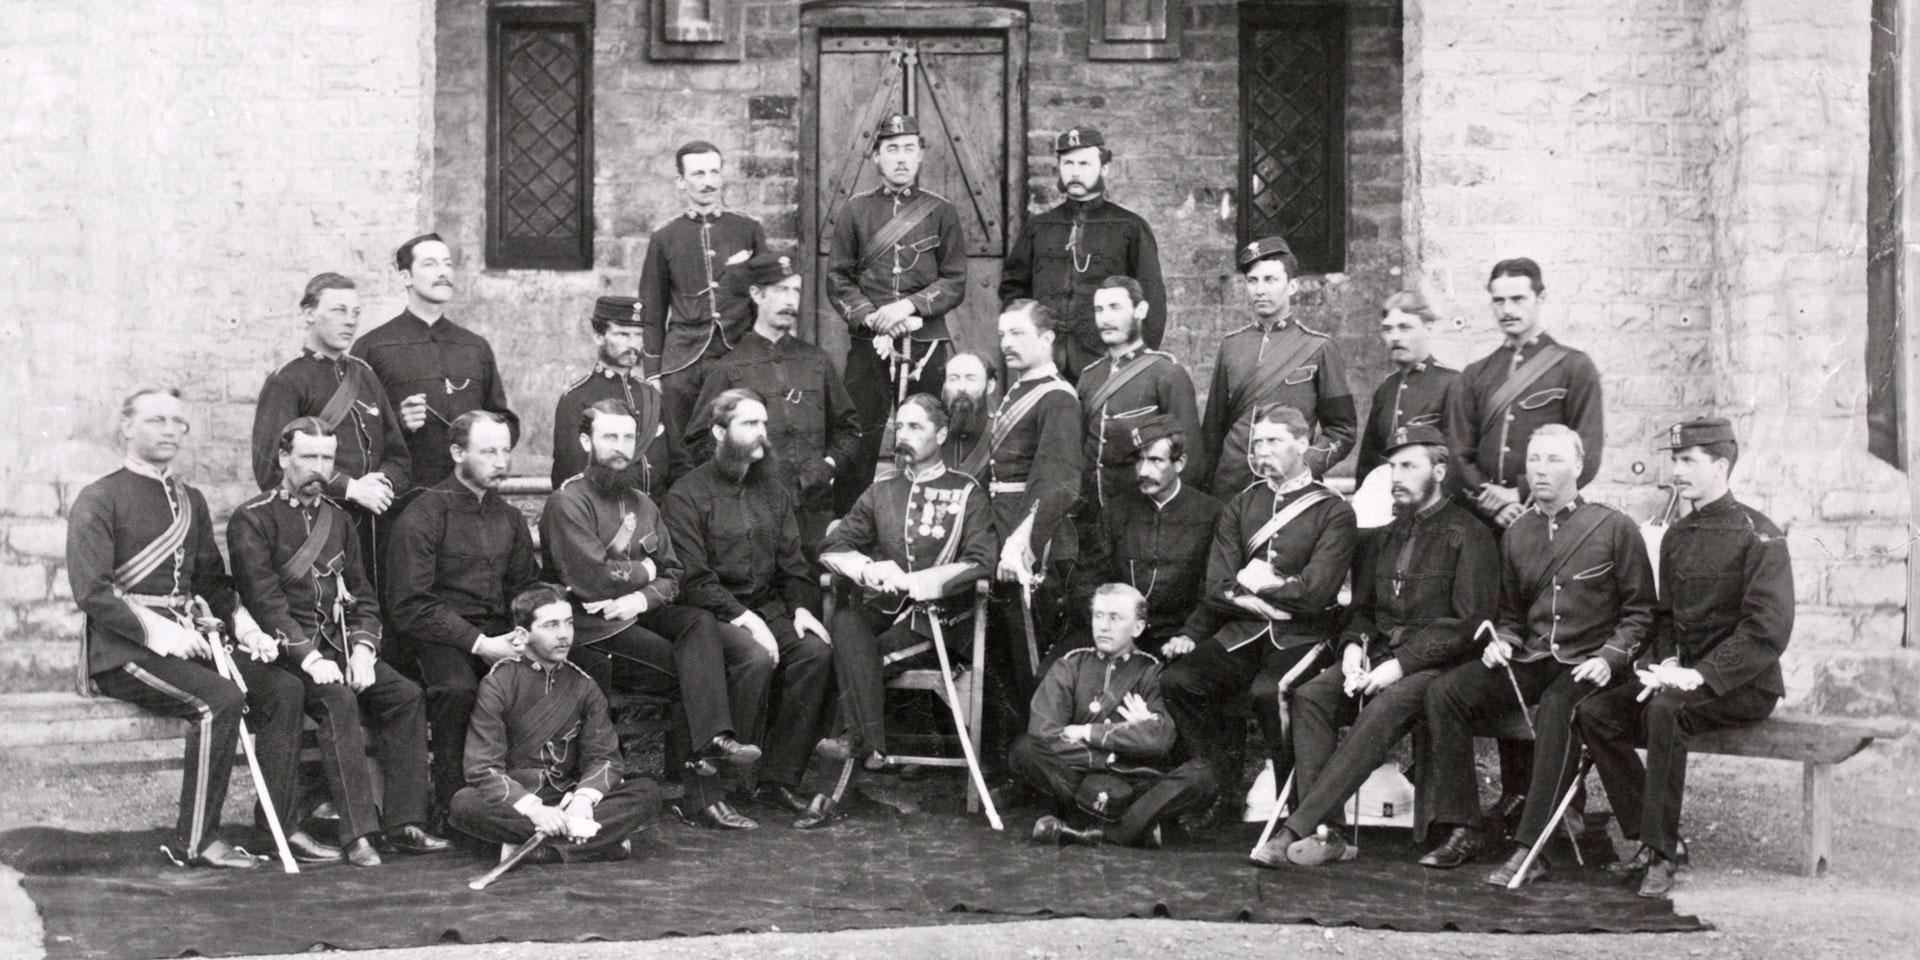 Officers of the 41st Regiment in India, c1870